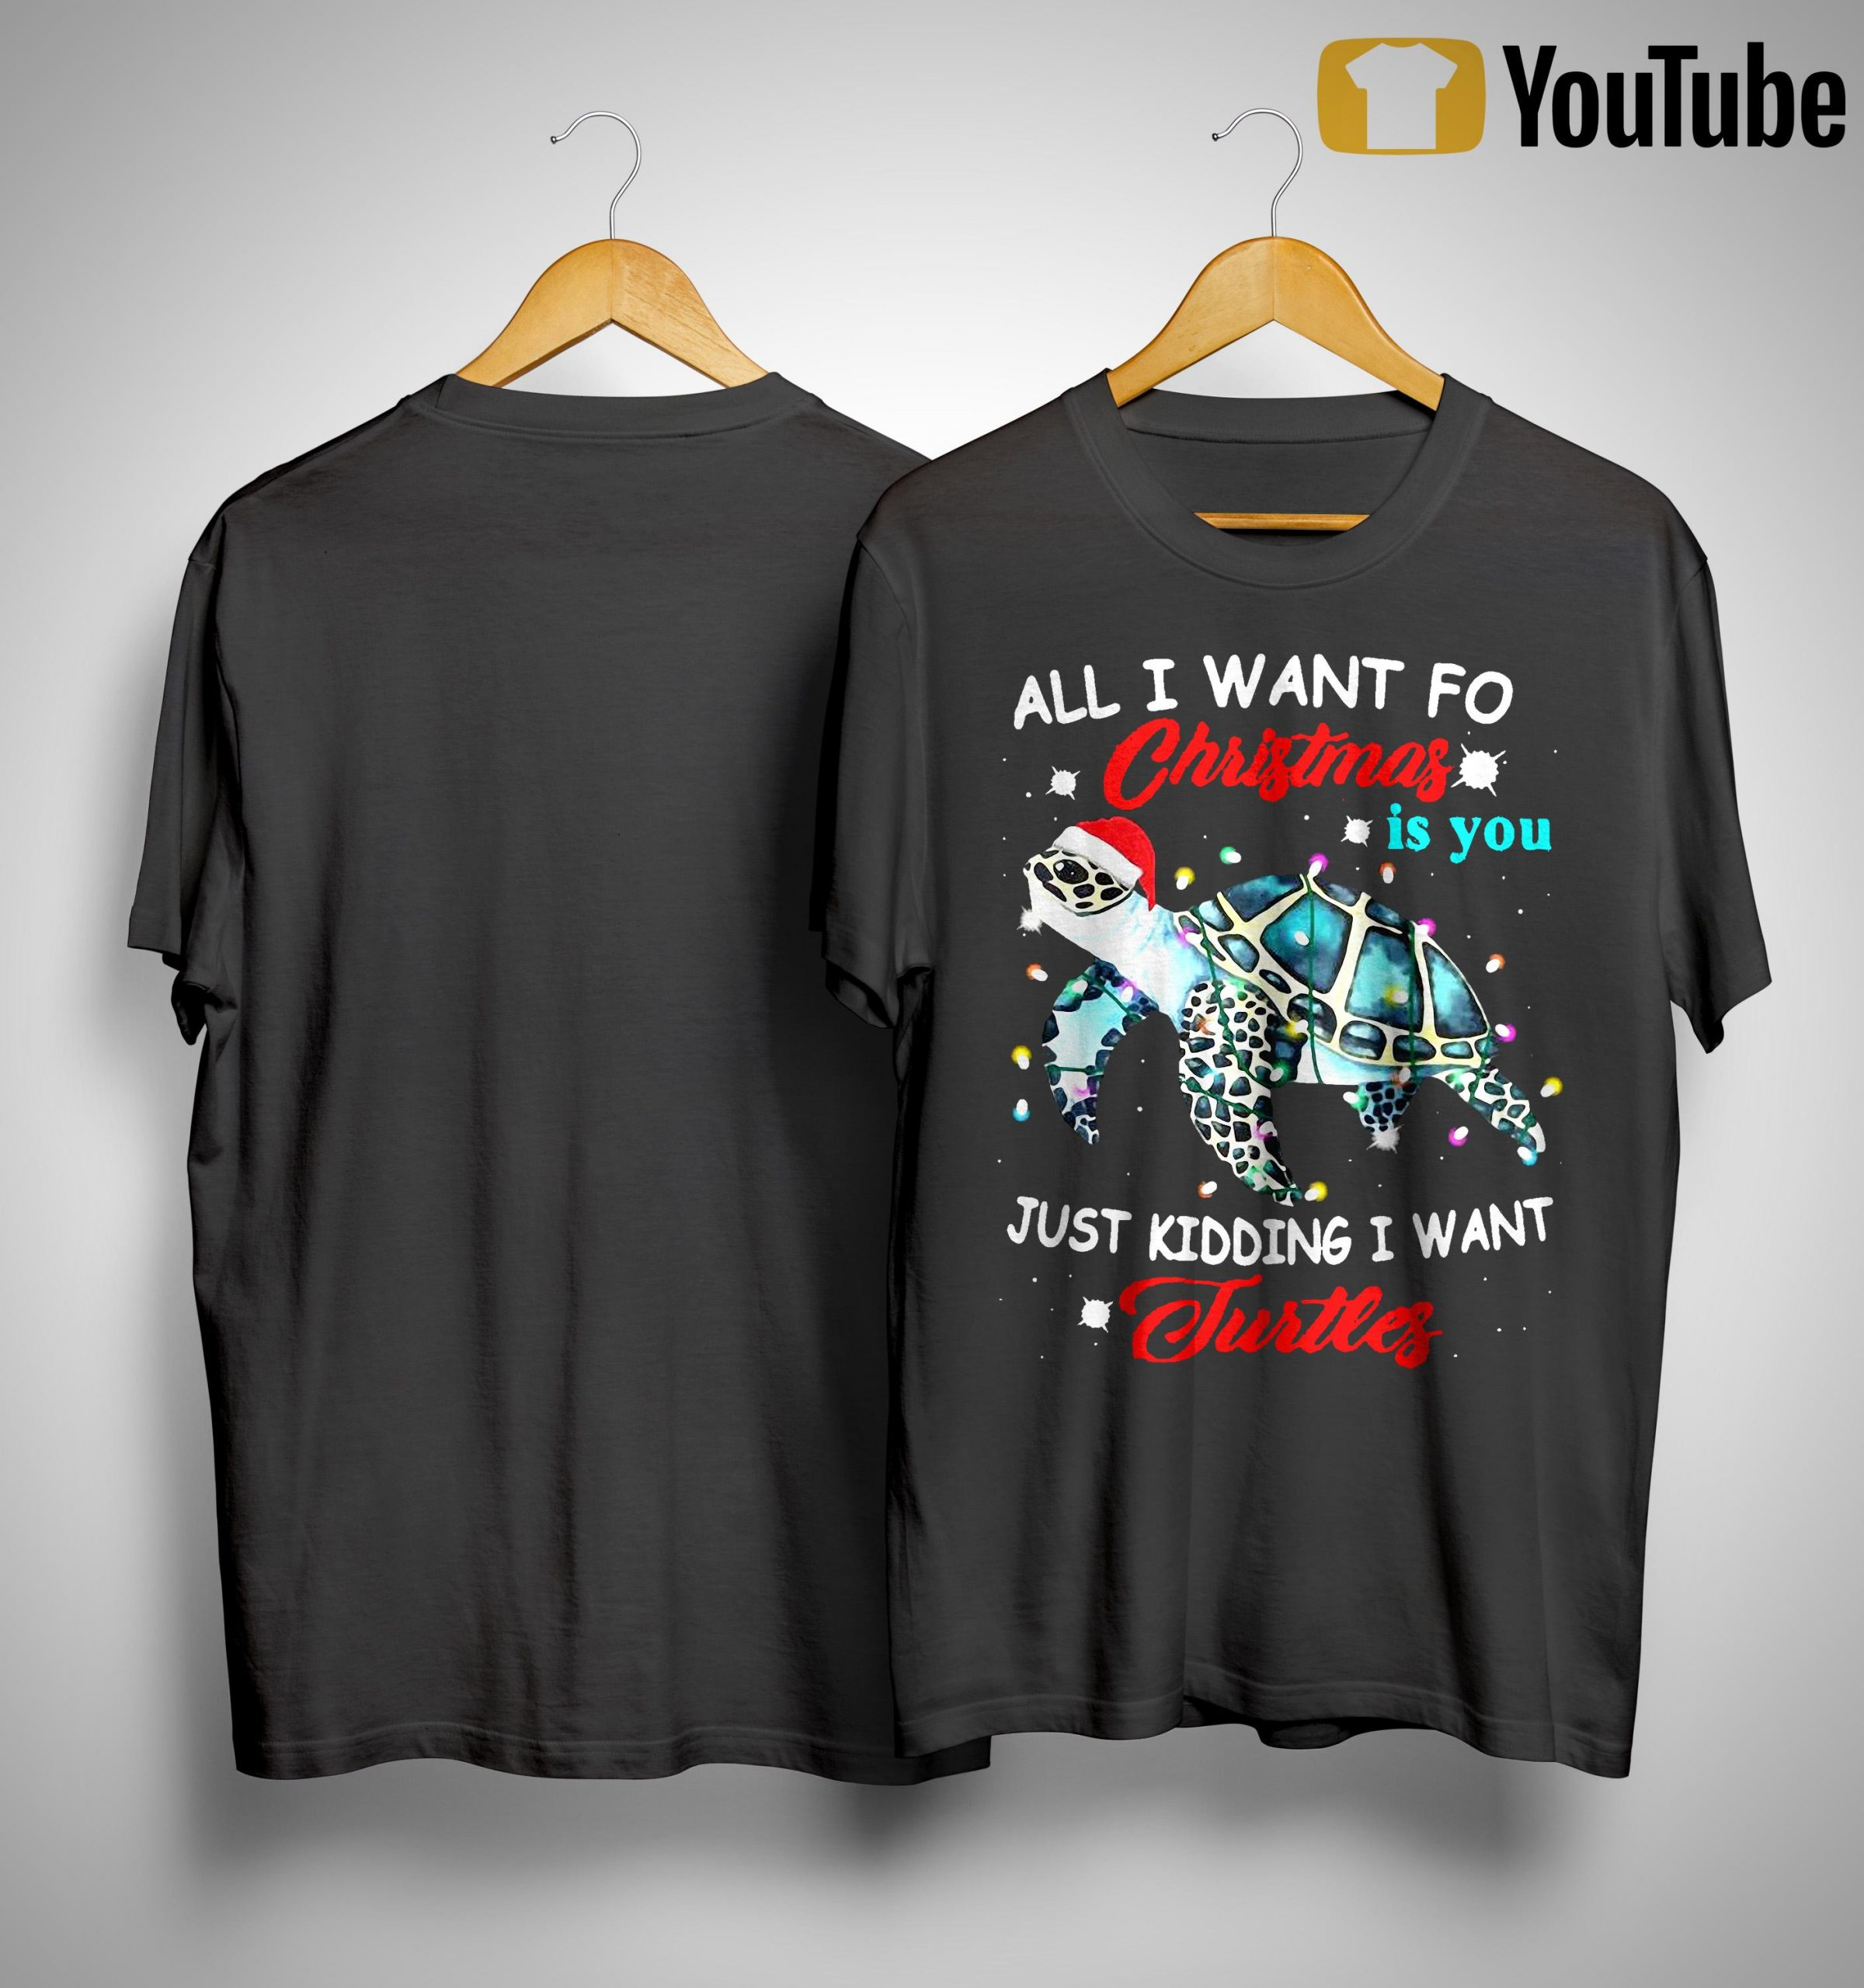 All I Want For Christmas Is You Just Kidding I Want Turtles Shirt